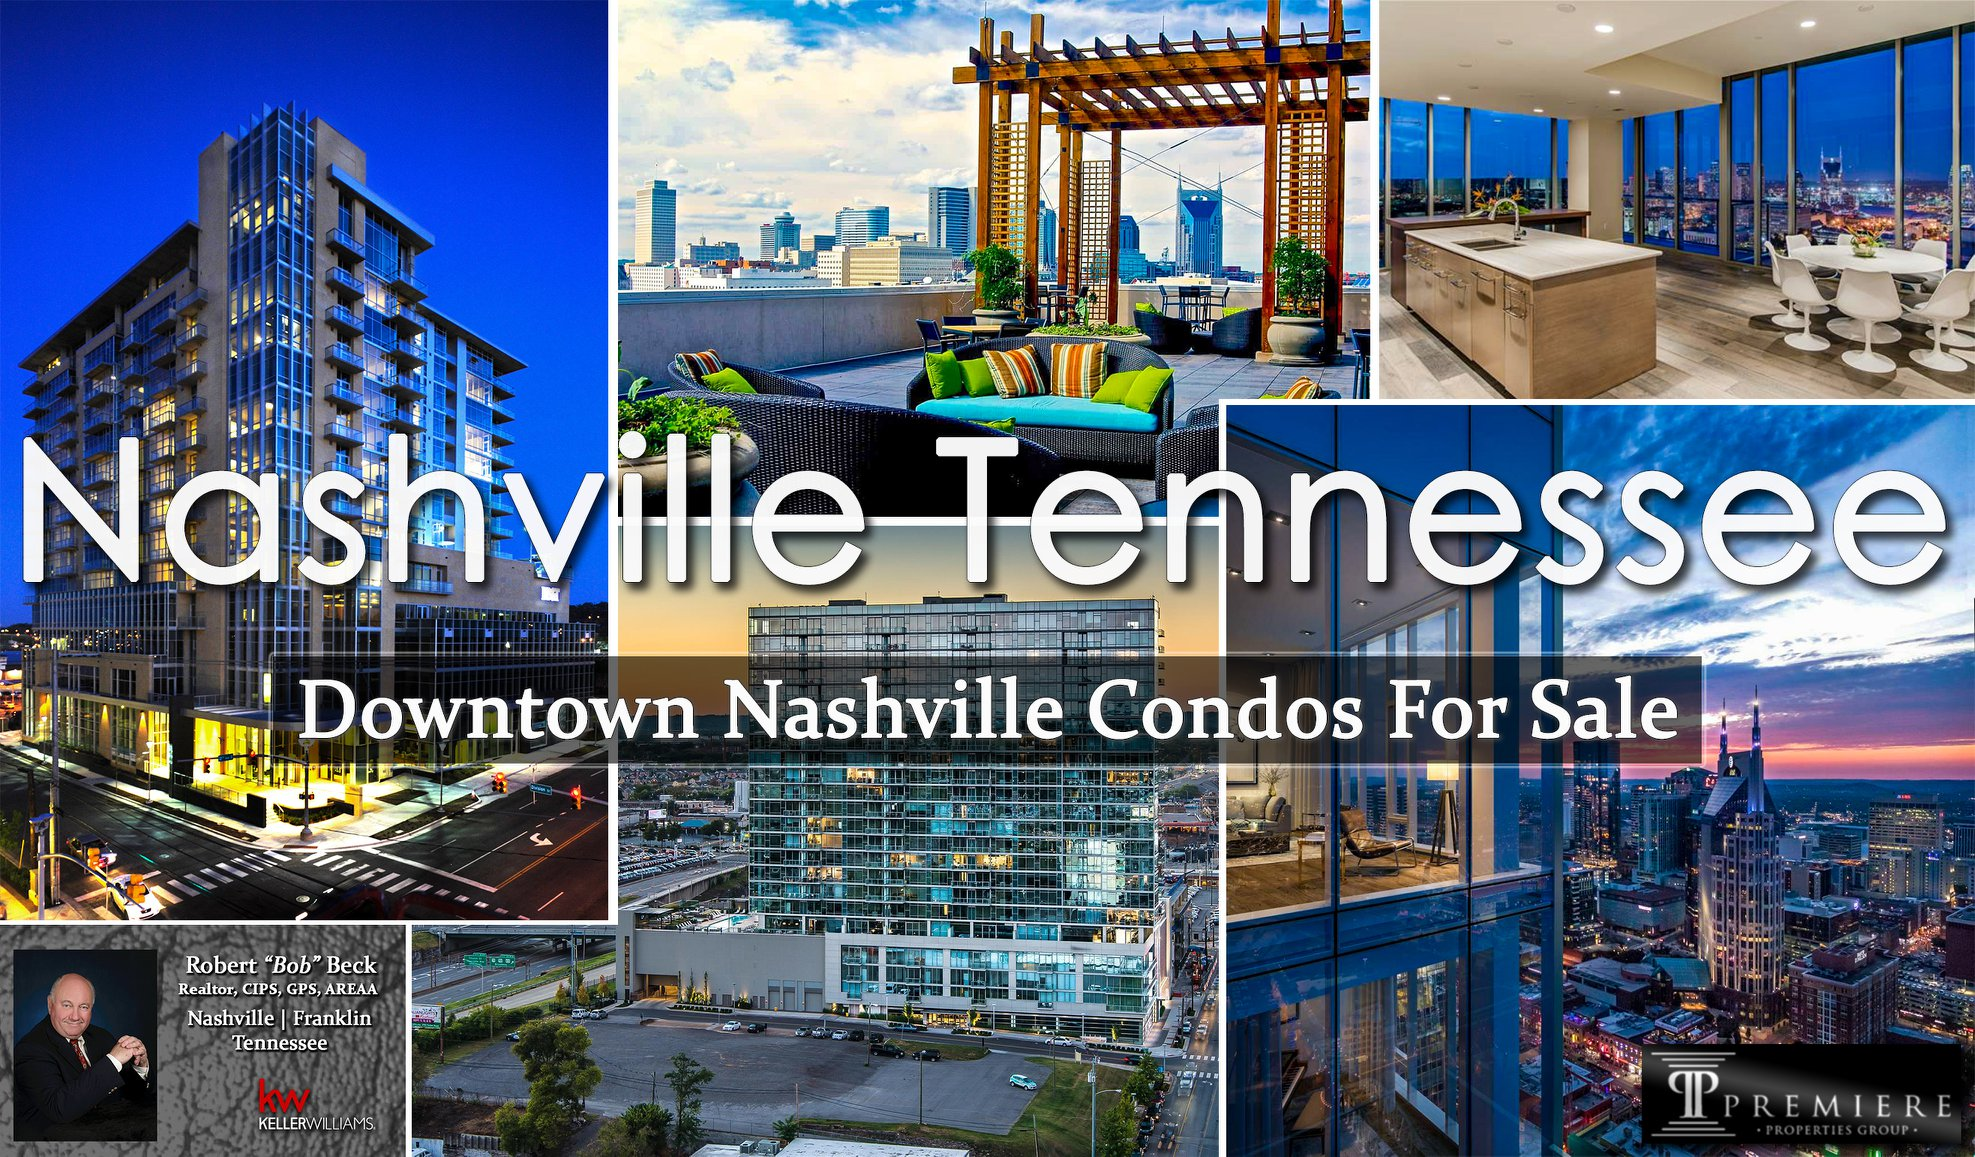 downtown nashville condos for sale